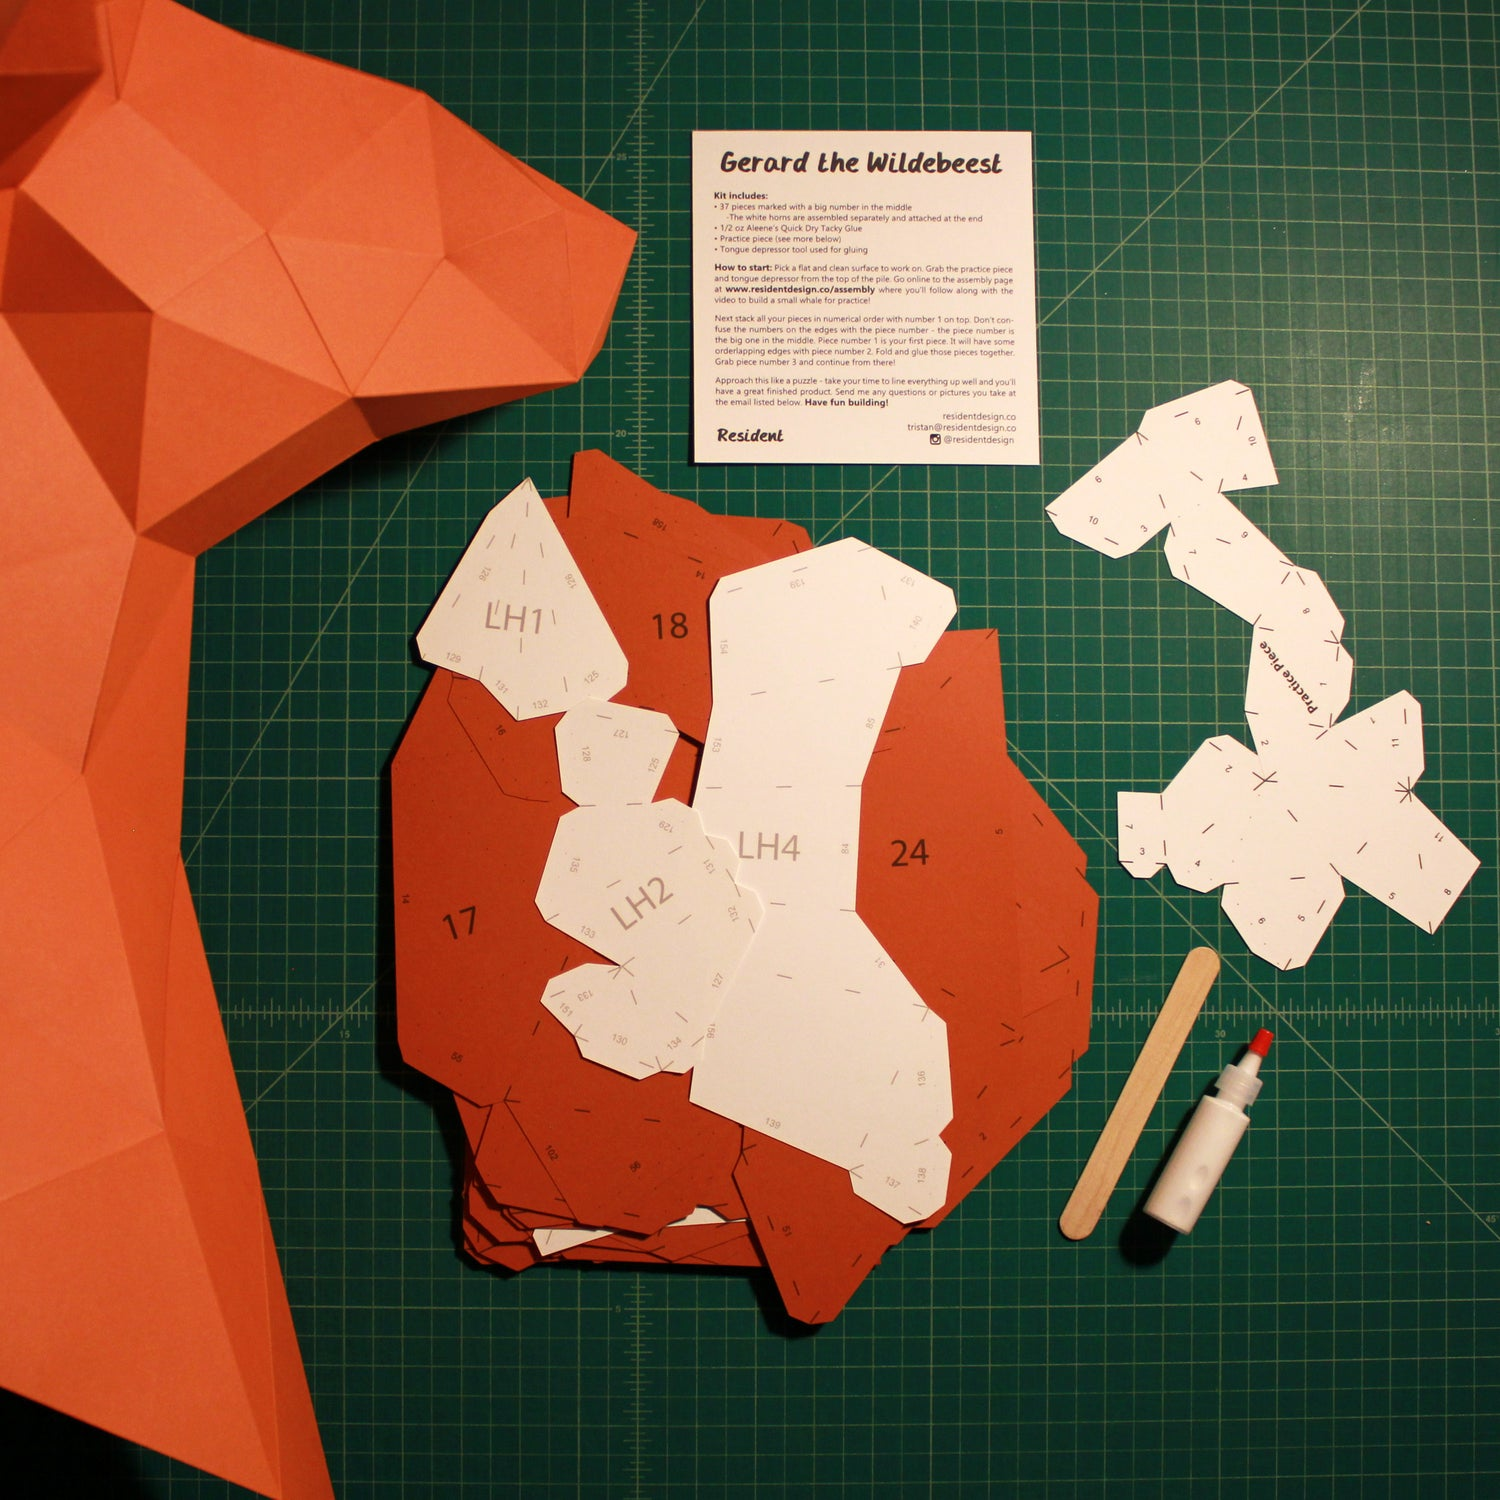 Cut & Scored DIY Animal Paper Sculpture Kits | Gerard the Wildebeest